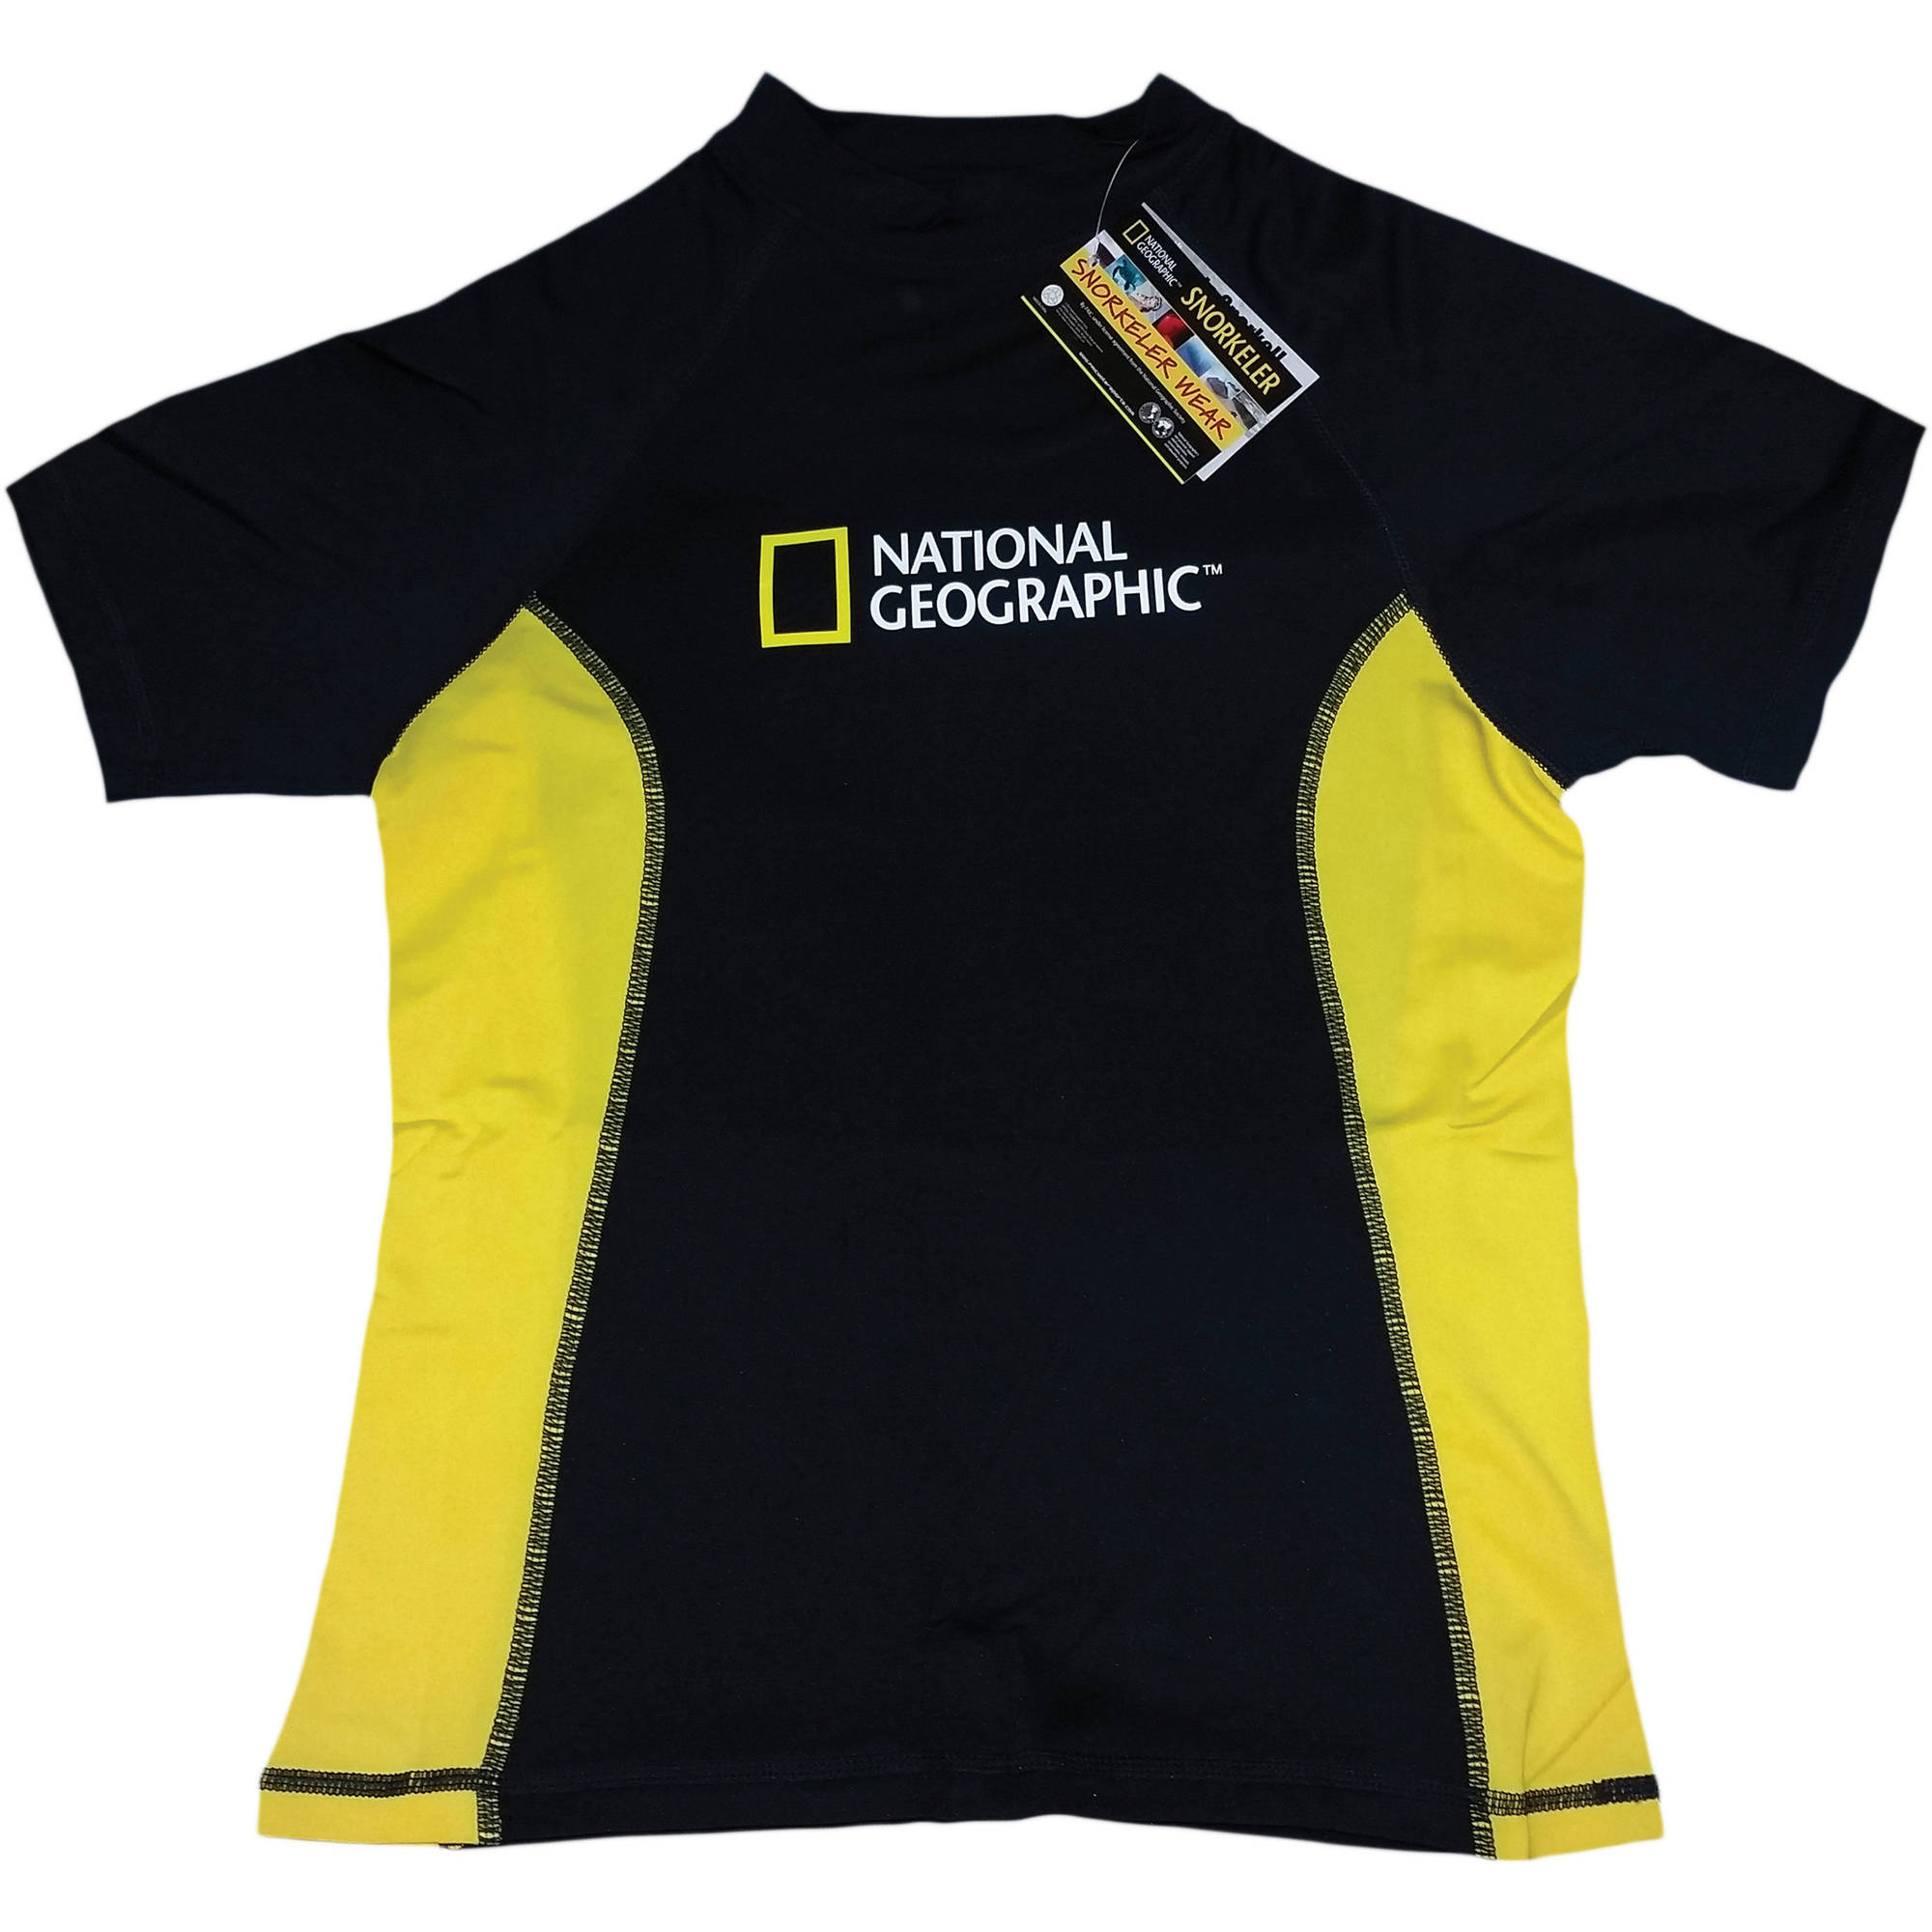 National Geographic Snorkeler Short Sleeve Rash Guard Ladies Classic, 50+ UV Protection, Anti-Bacterial Fast Dry... by National Geographic Snorkeler